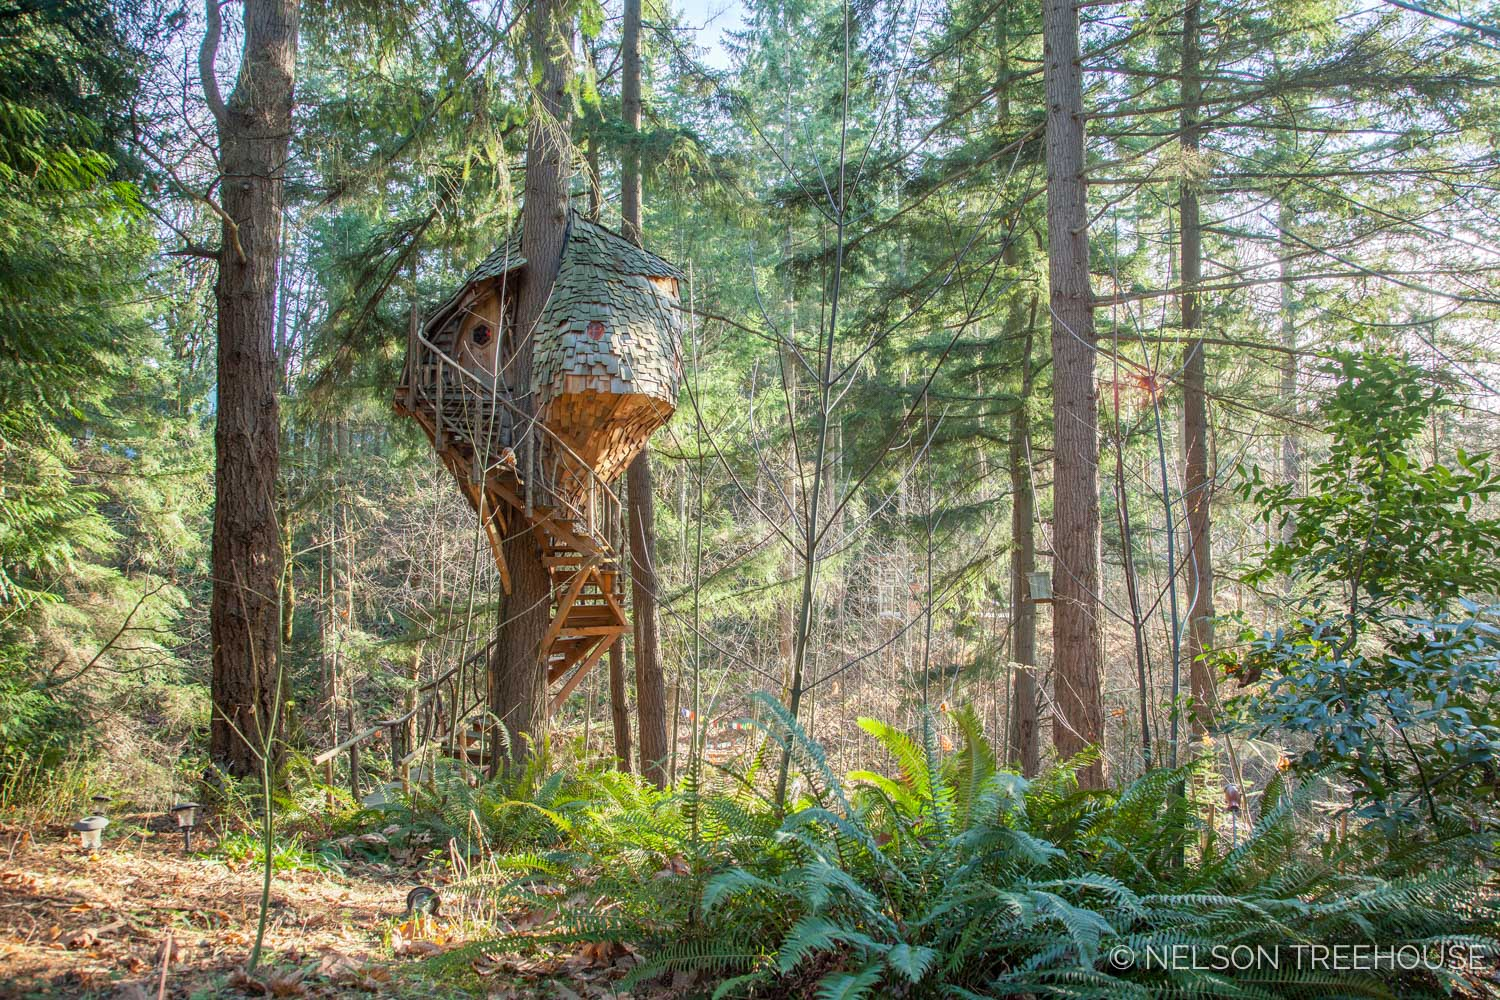 Beehive Treehouse in the forest